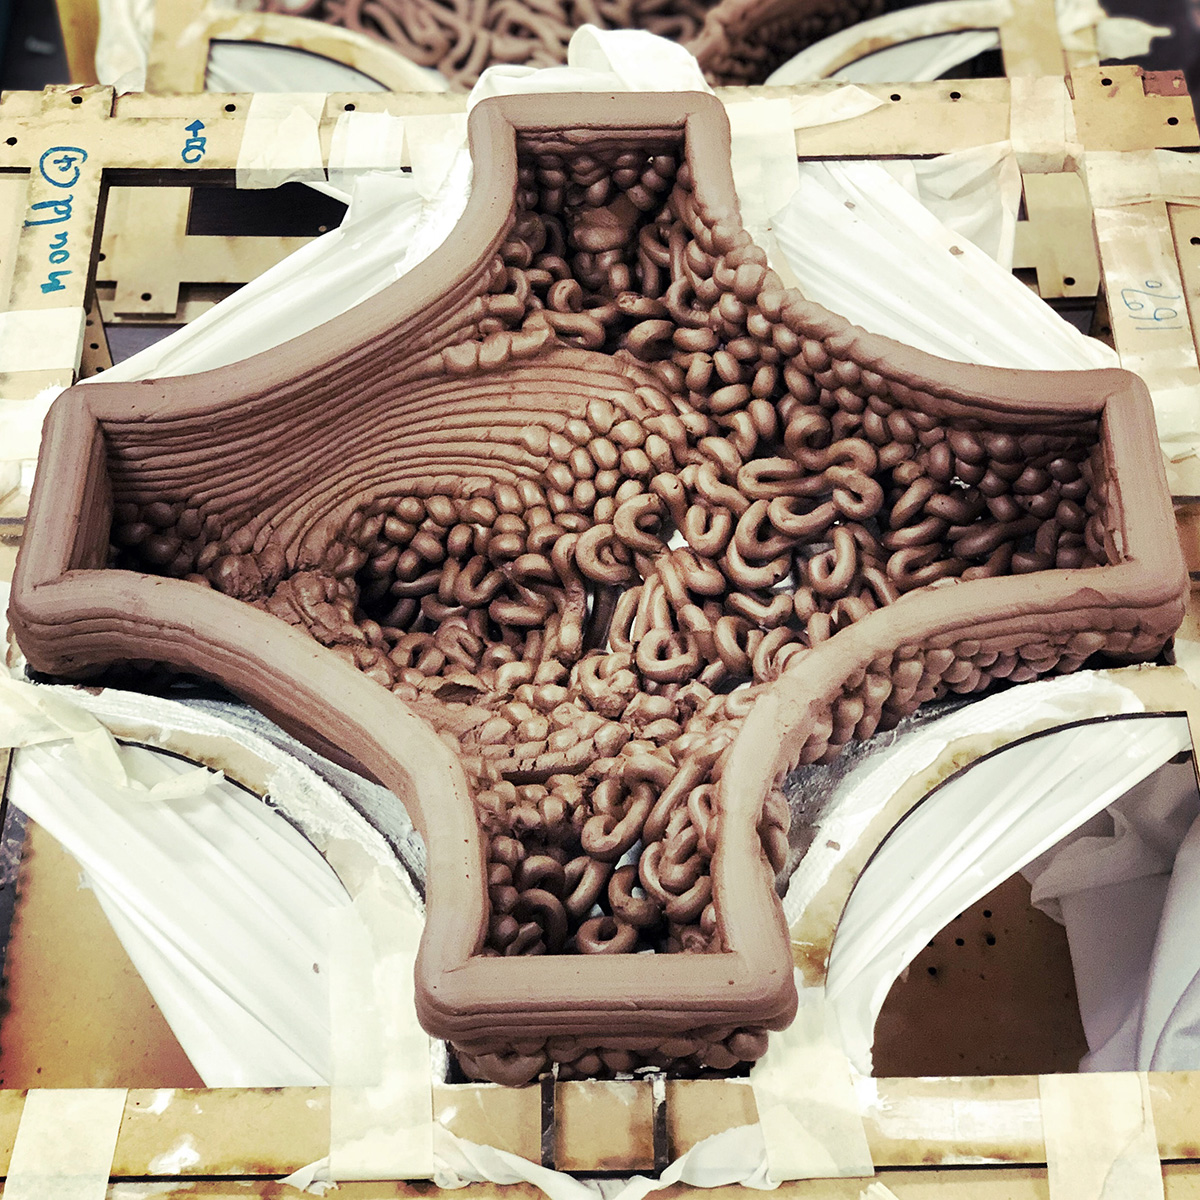 AUTOBRICKFORMATION, Christian J Lange, Ceramic Architecture, 3d printed terracotta, HKU, Faculty of Architecture